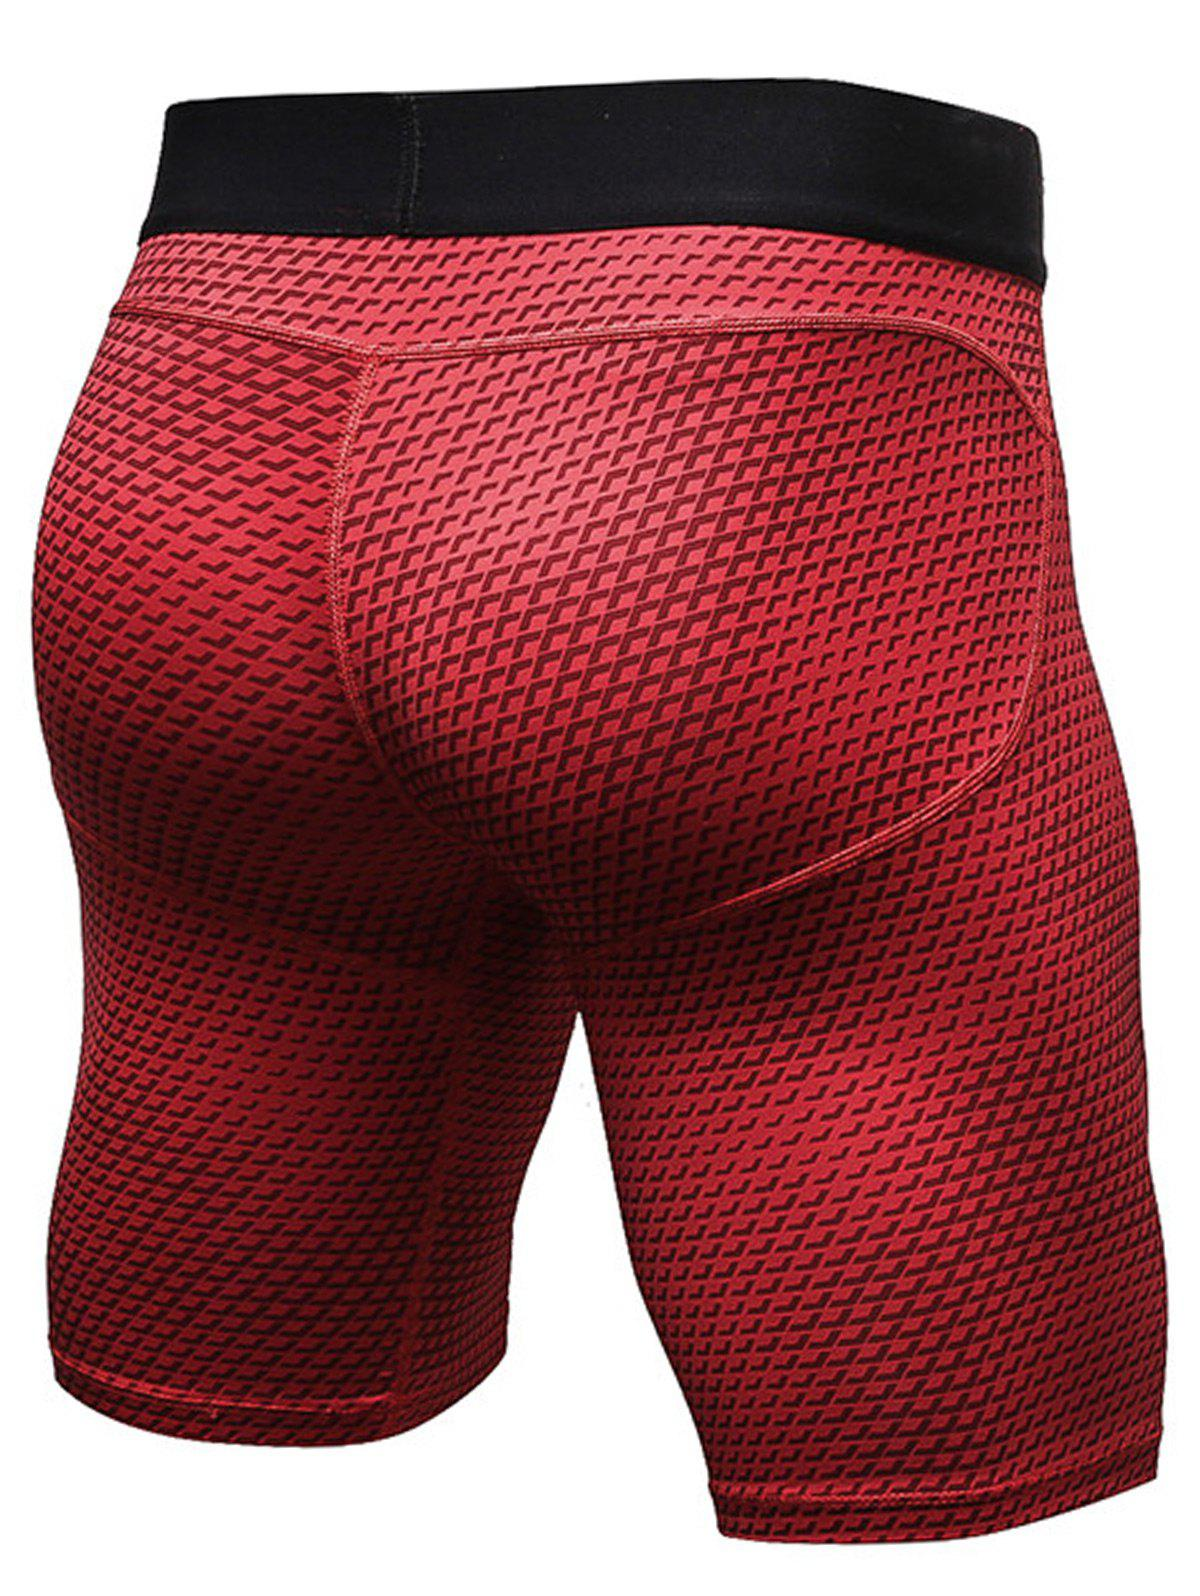 3D Geometric Print Fitted Quick Dry Gym Shorts - RED XL